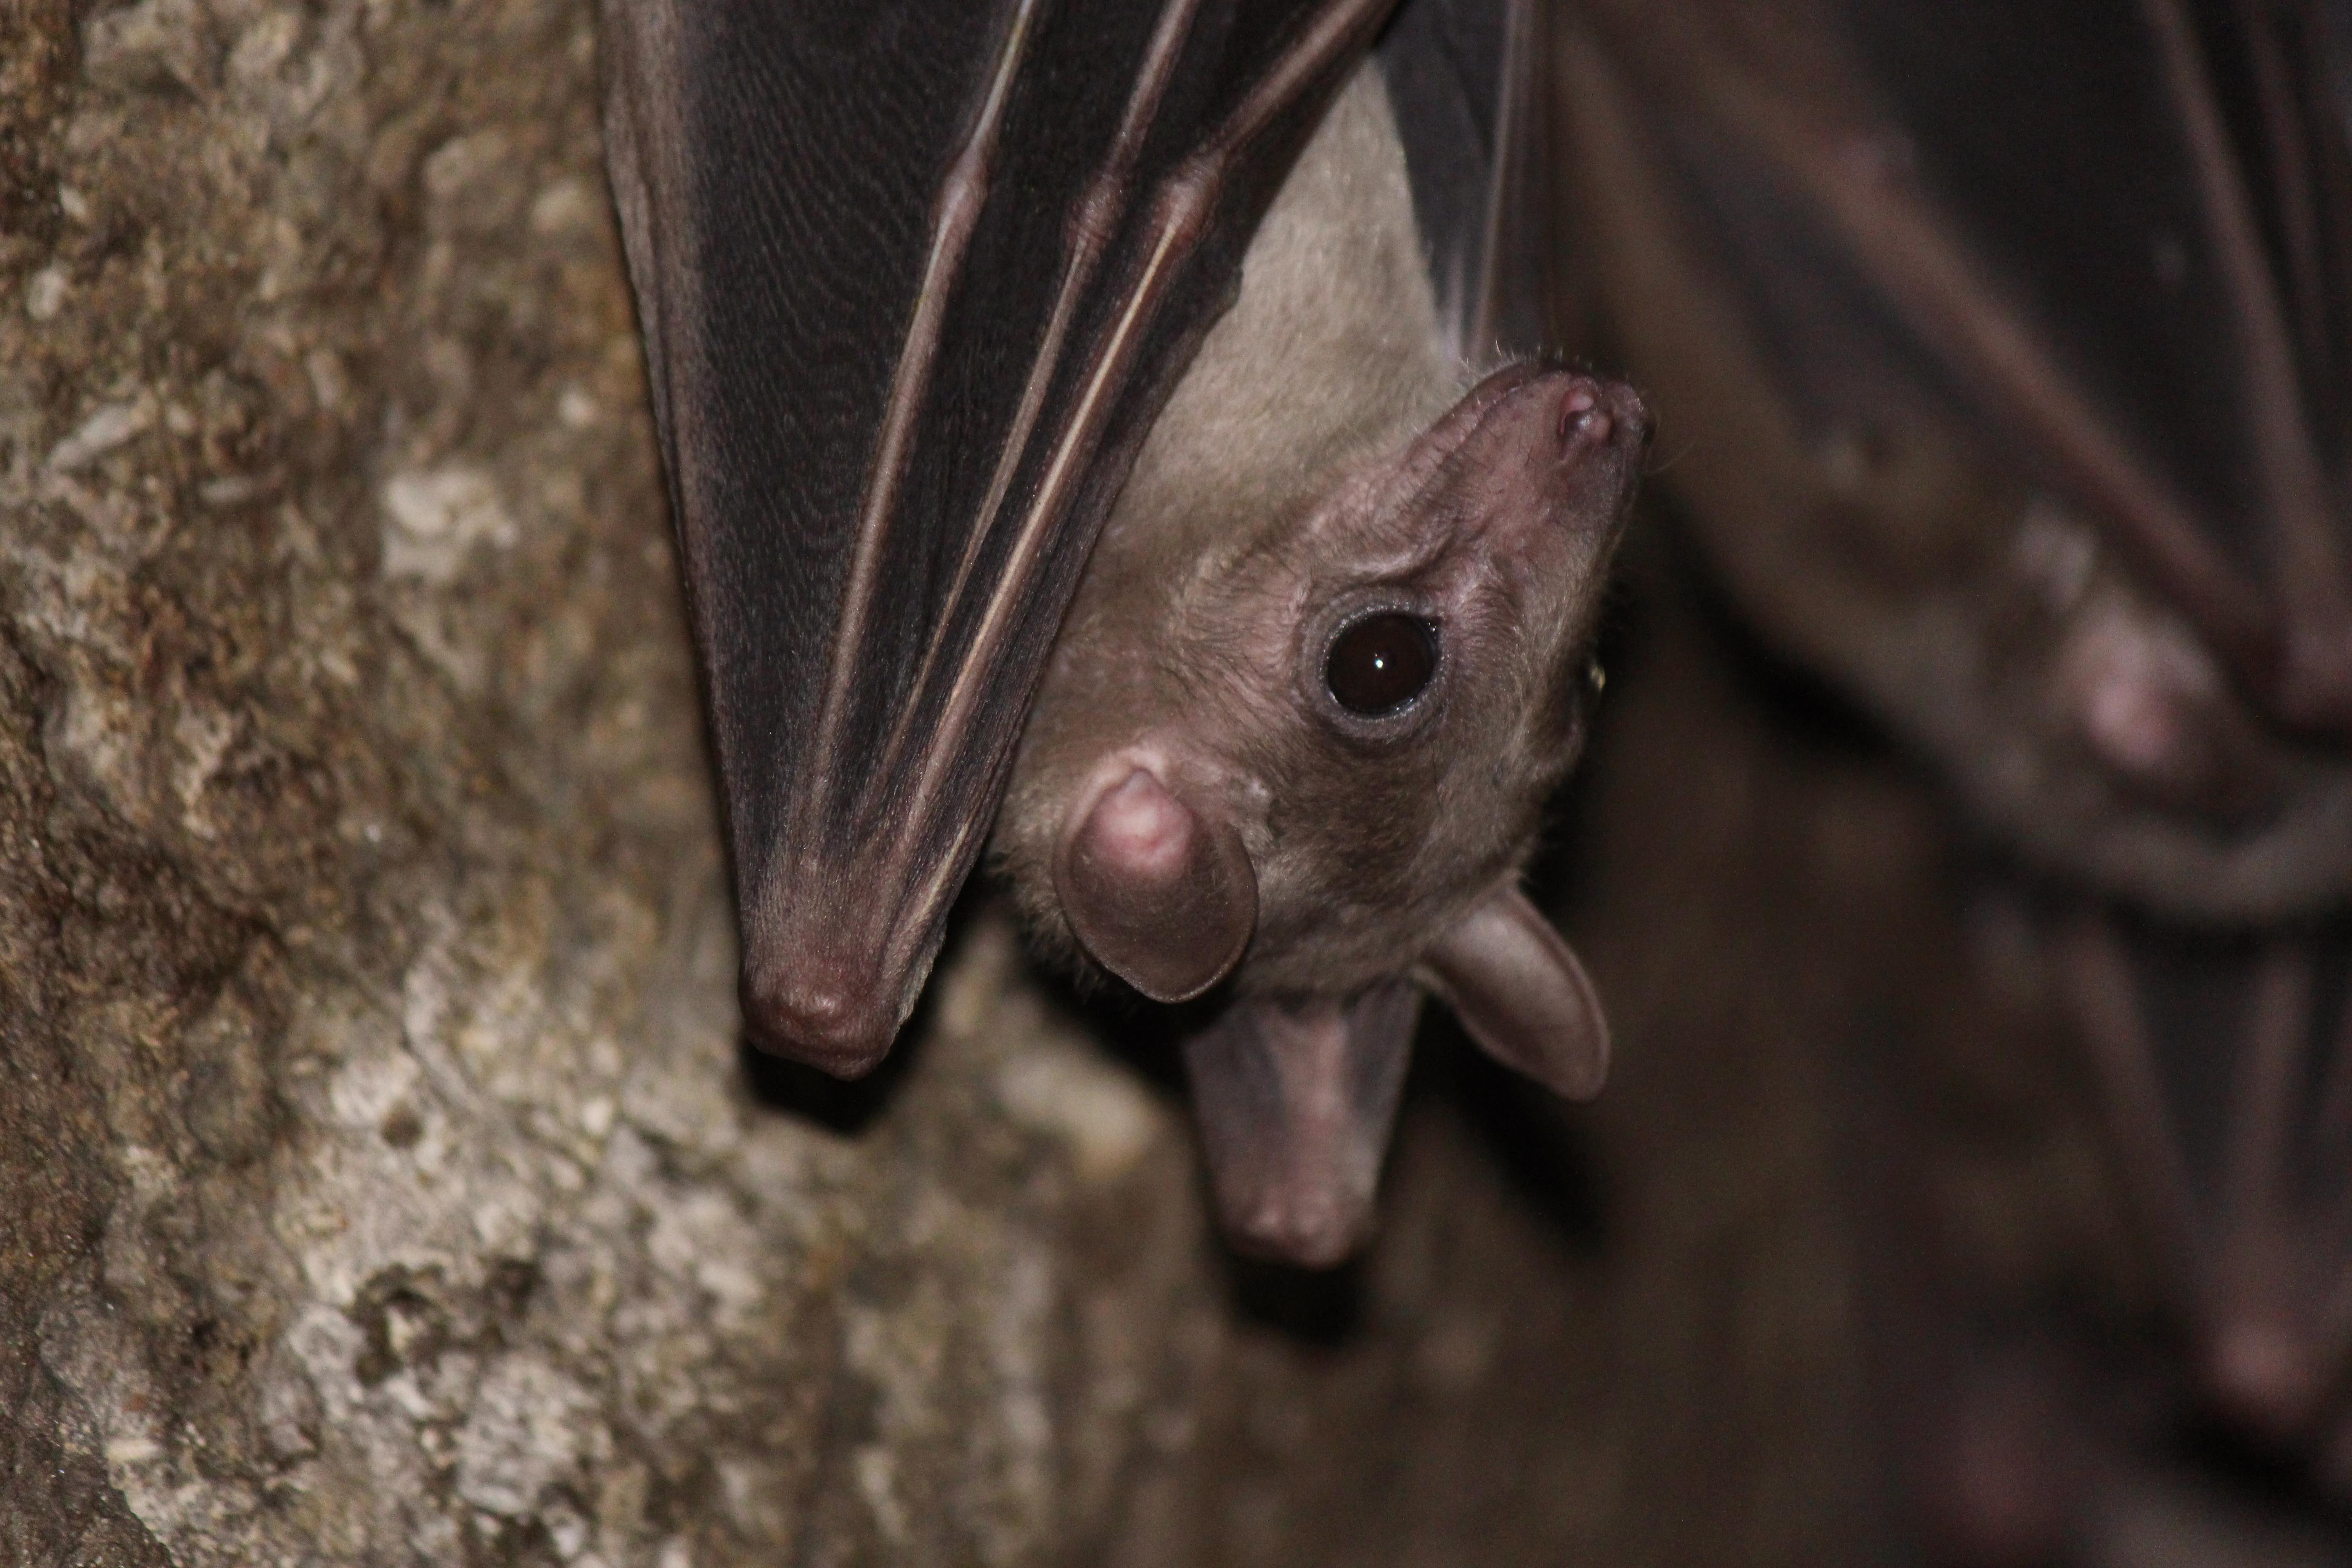 Bats might no longer be as protected as they once were